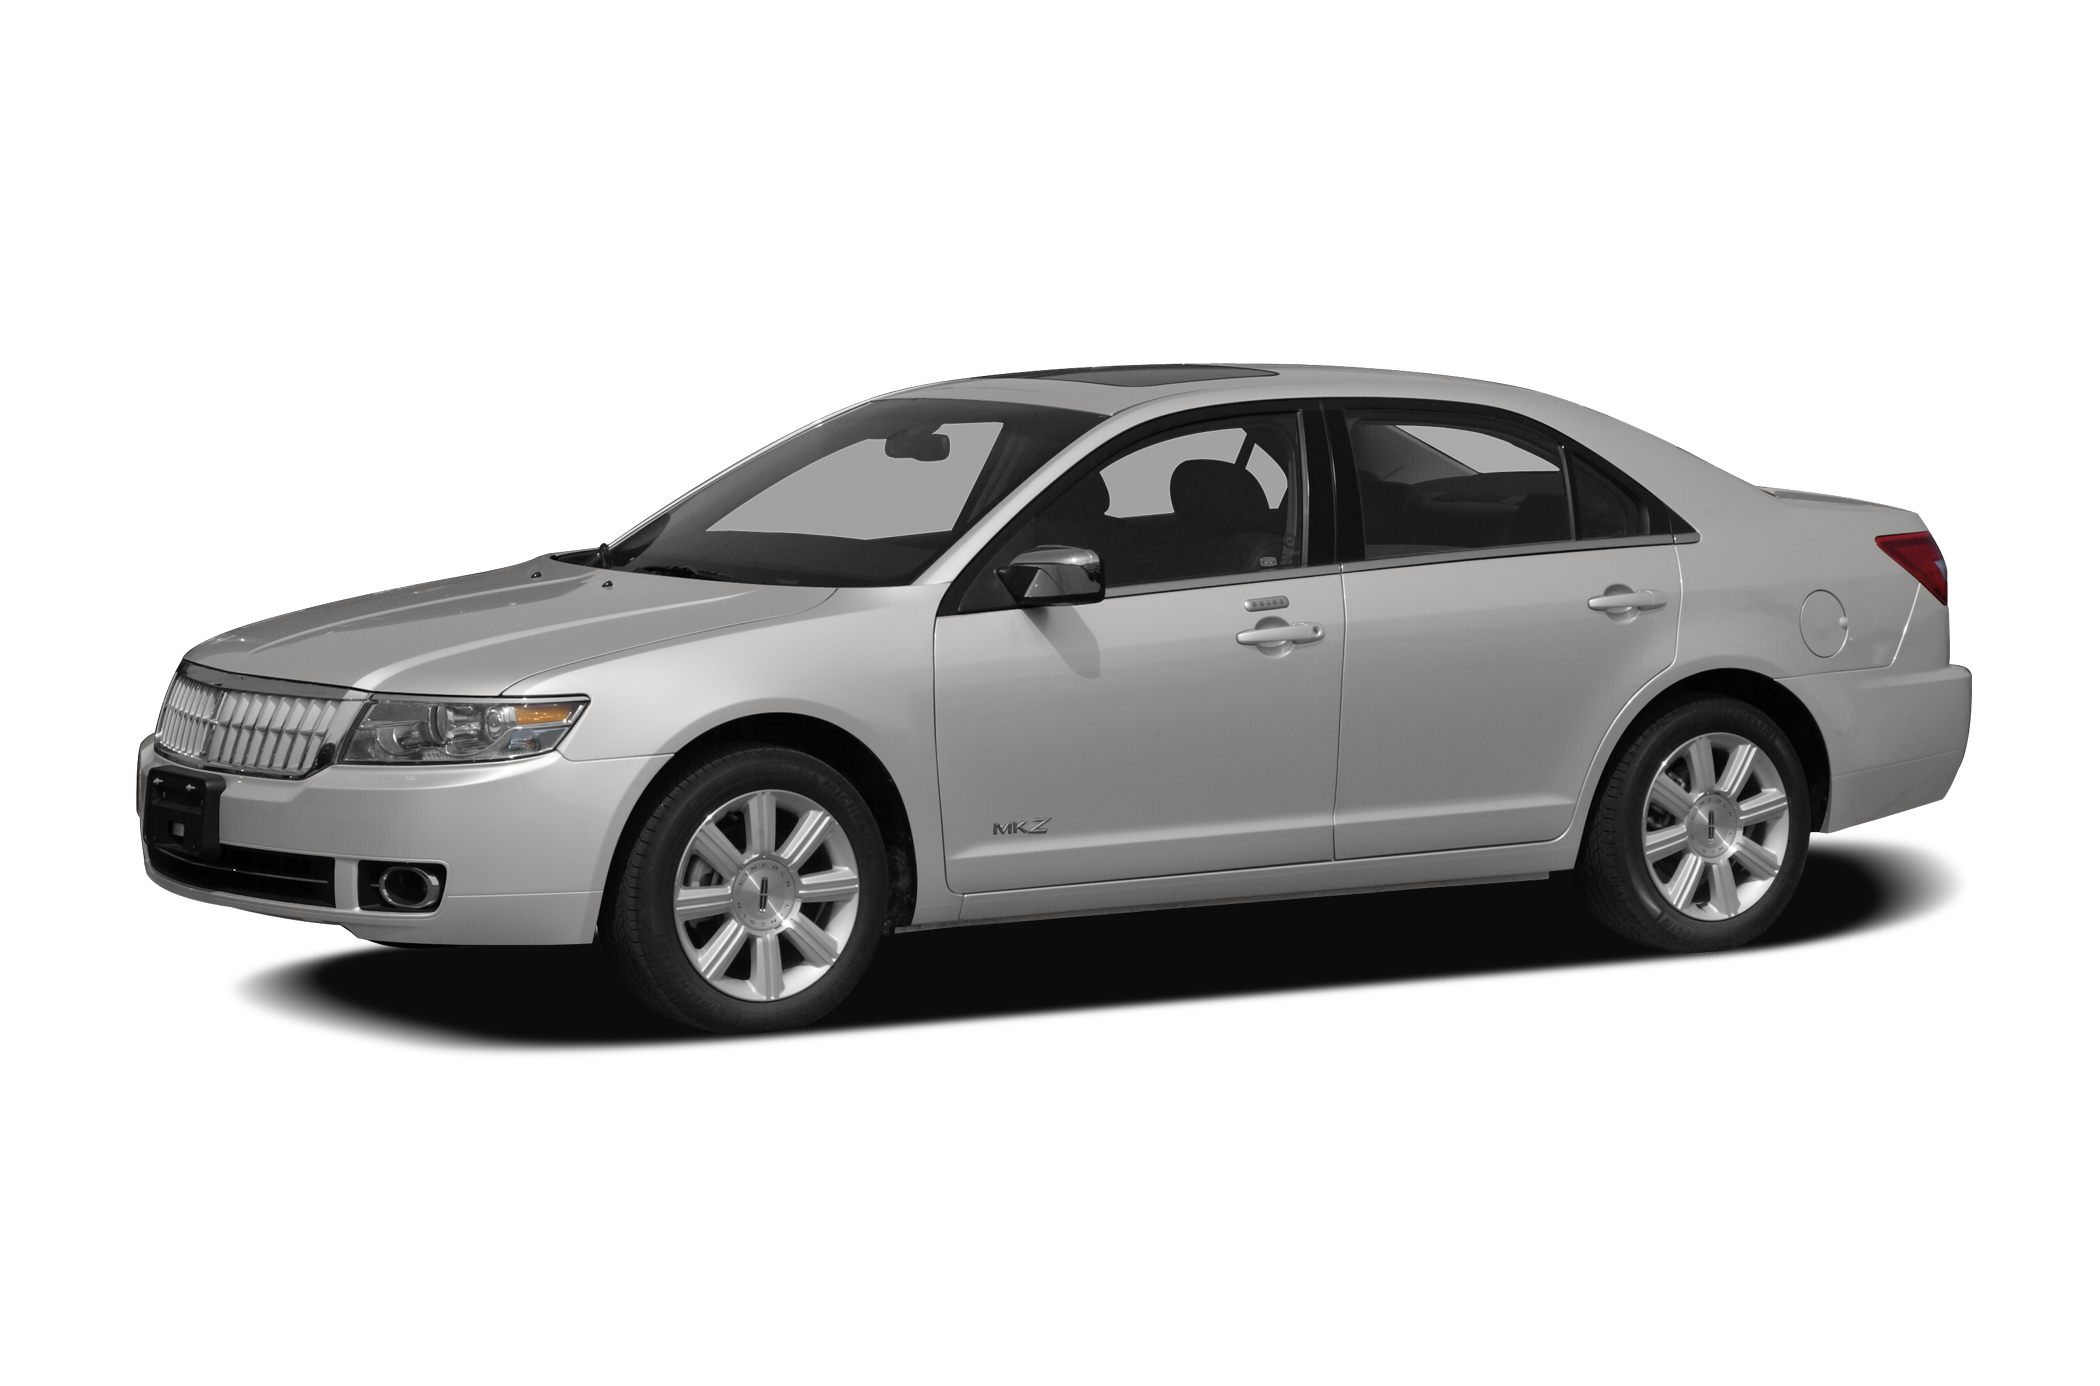 2009 Lincoln MKZ Base 4dr Front wheel Drive Sedan Pricing and Options